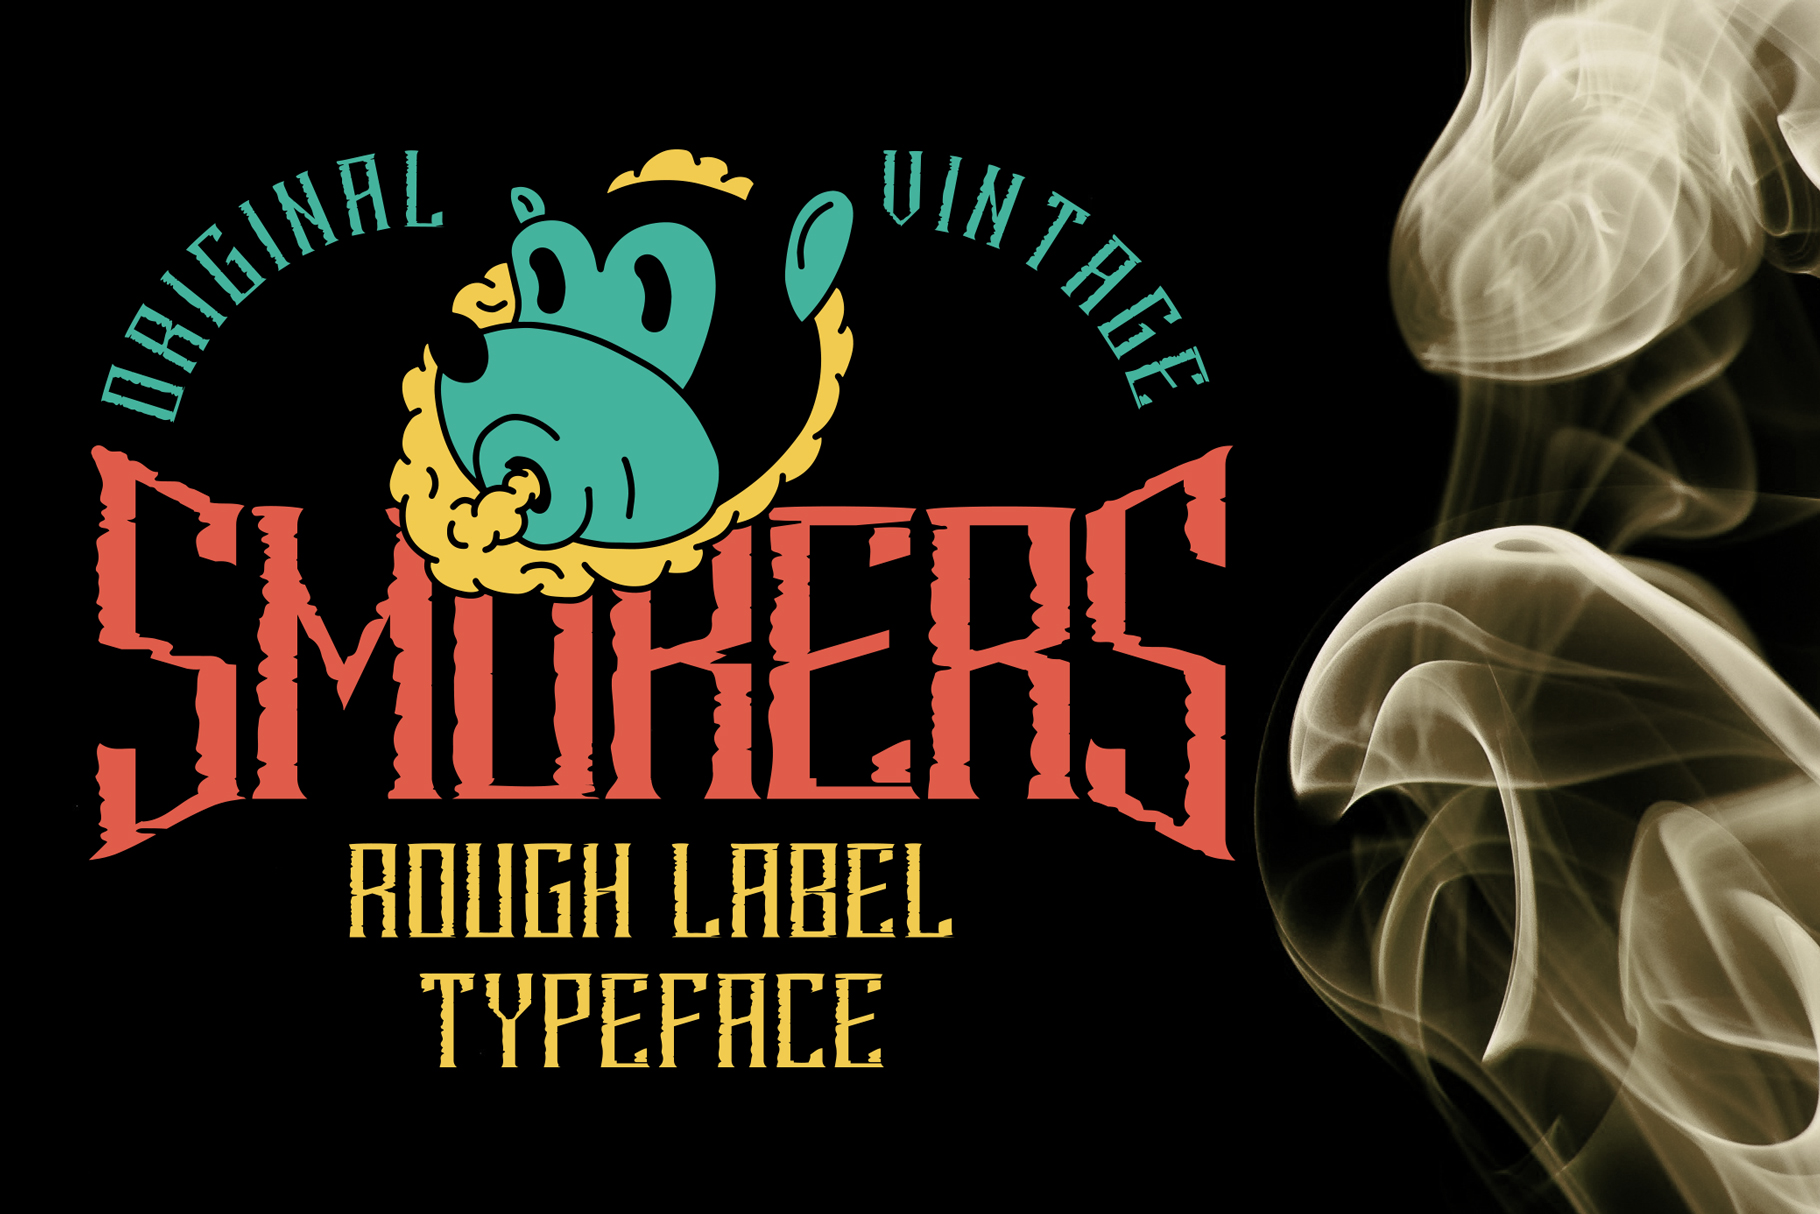 Smokers typeface example image 5